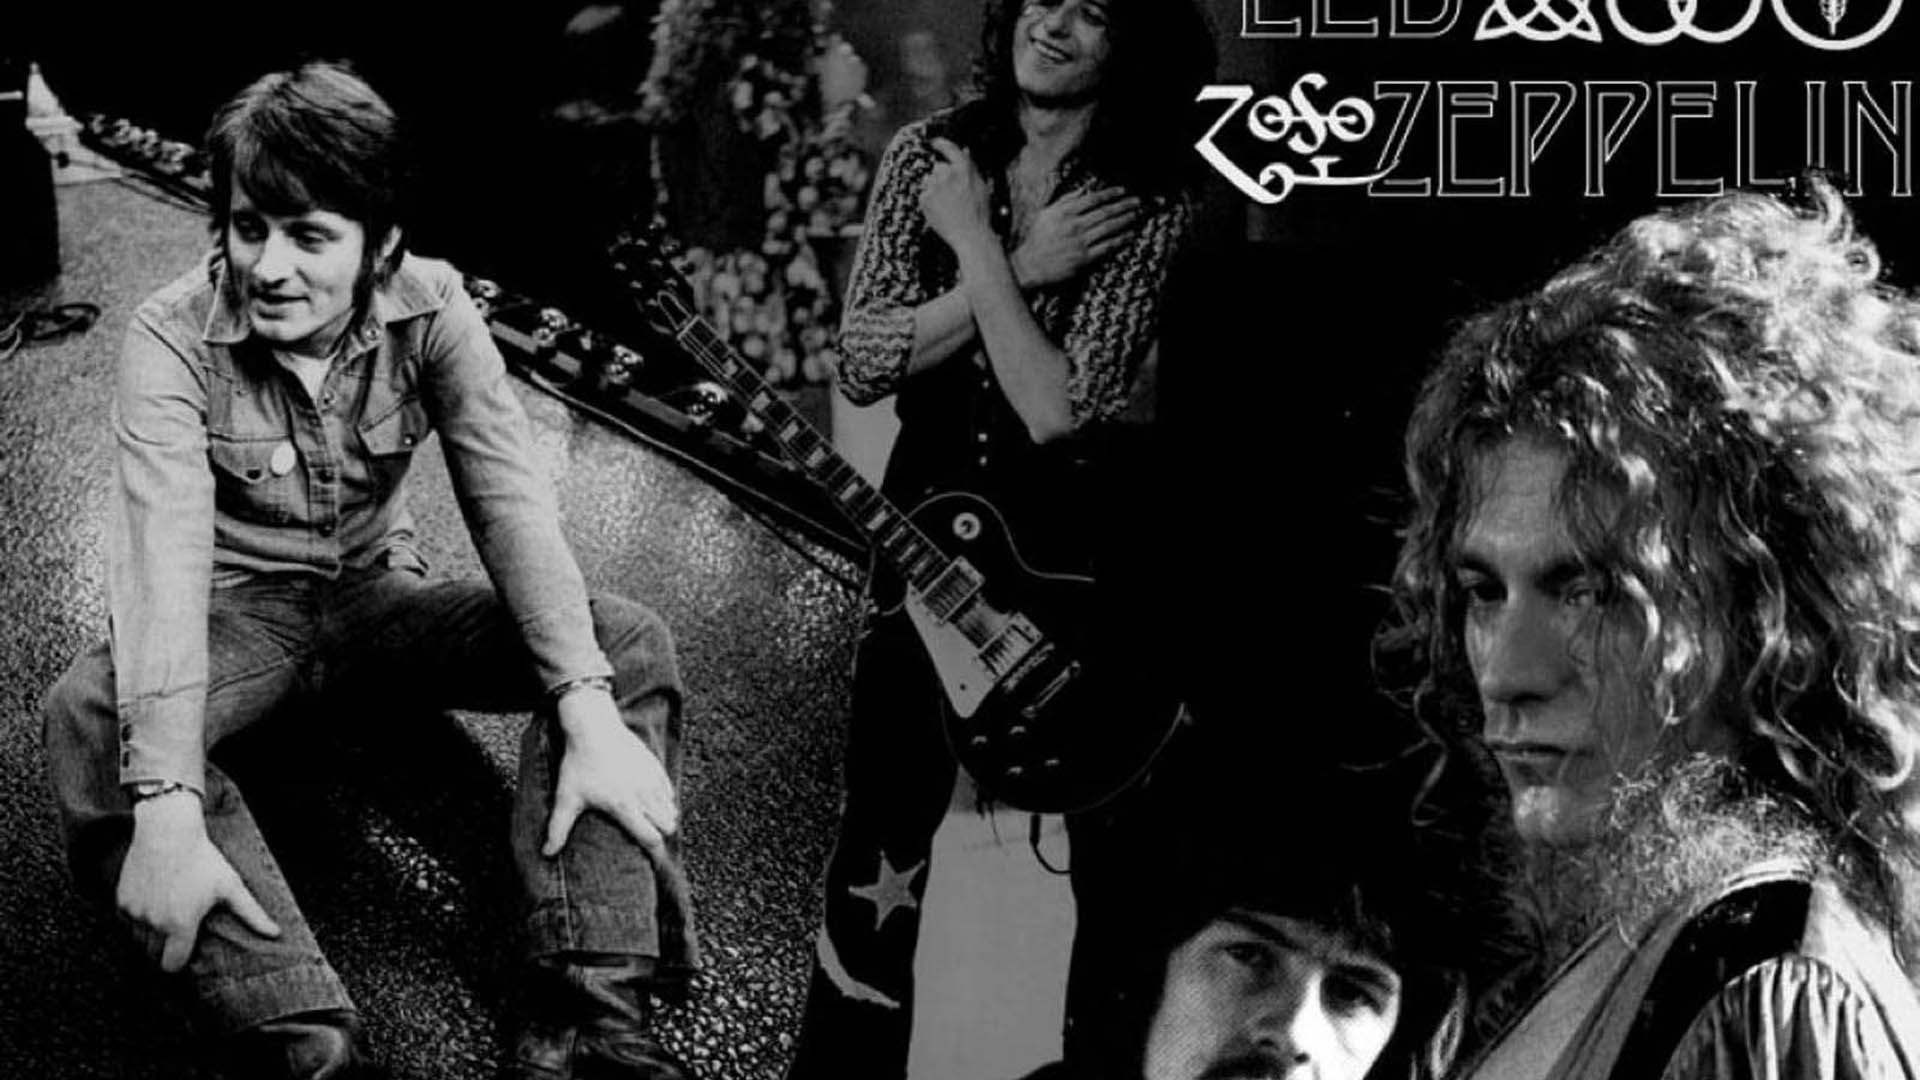 led zeppelin wallpapers images photos pictures backgrounds